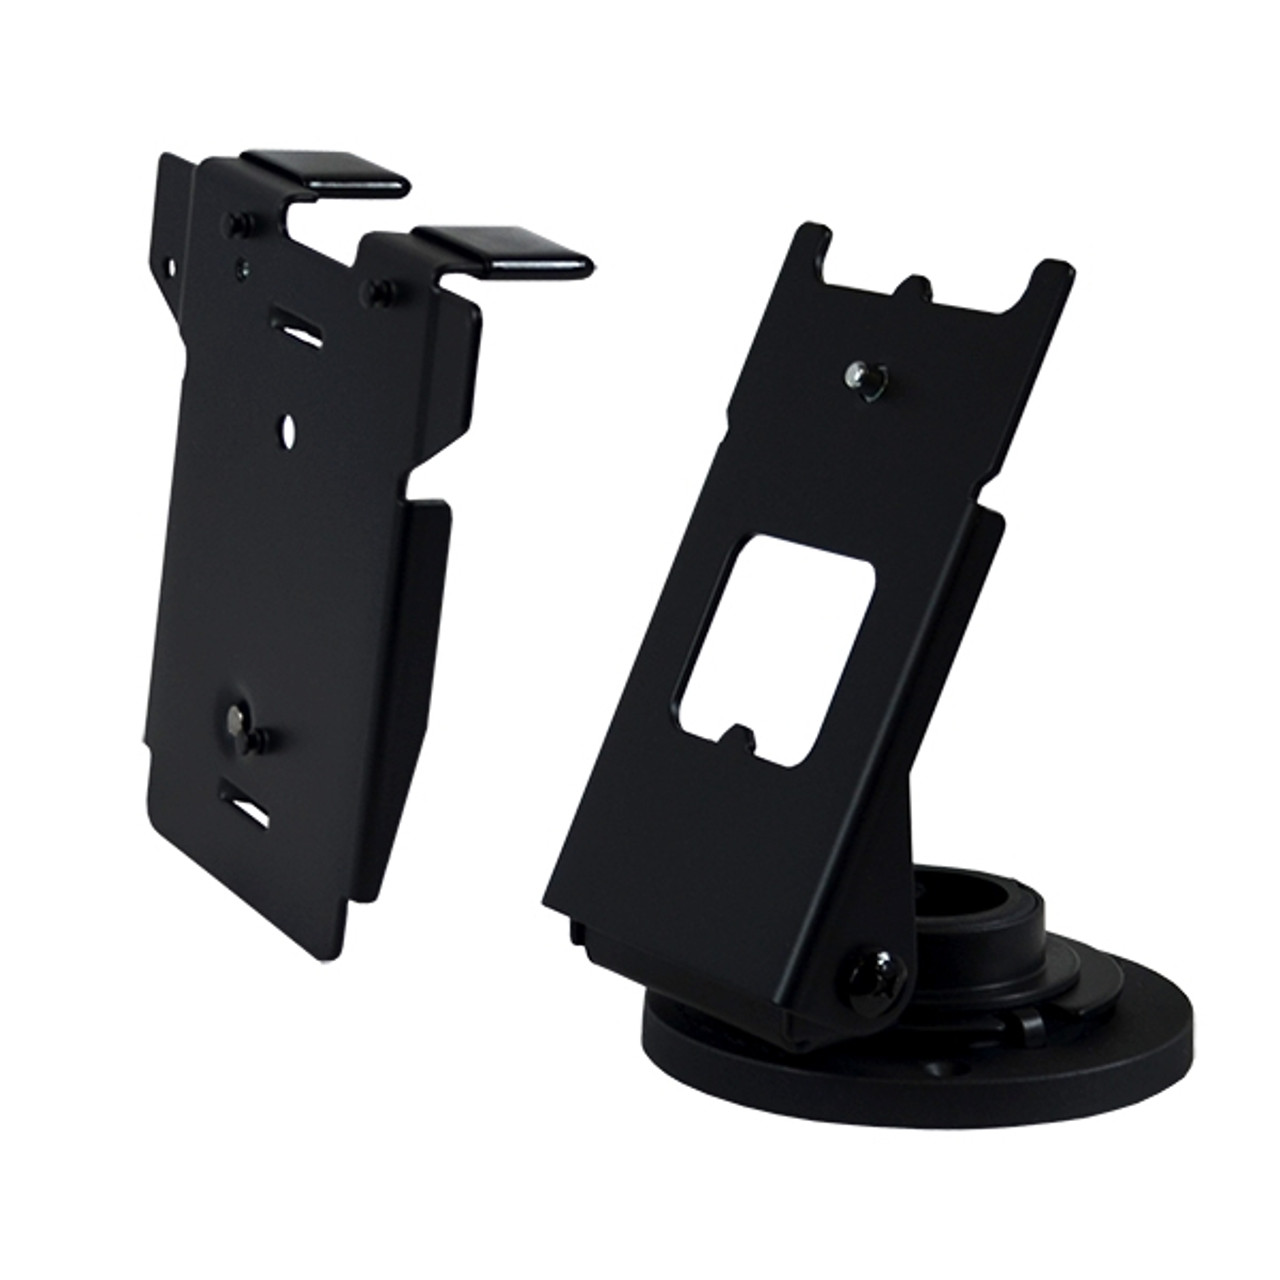 Swivel Stands Credit Card Stand Quick Release VeriFone MX915